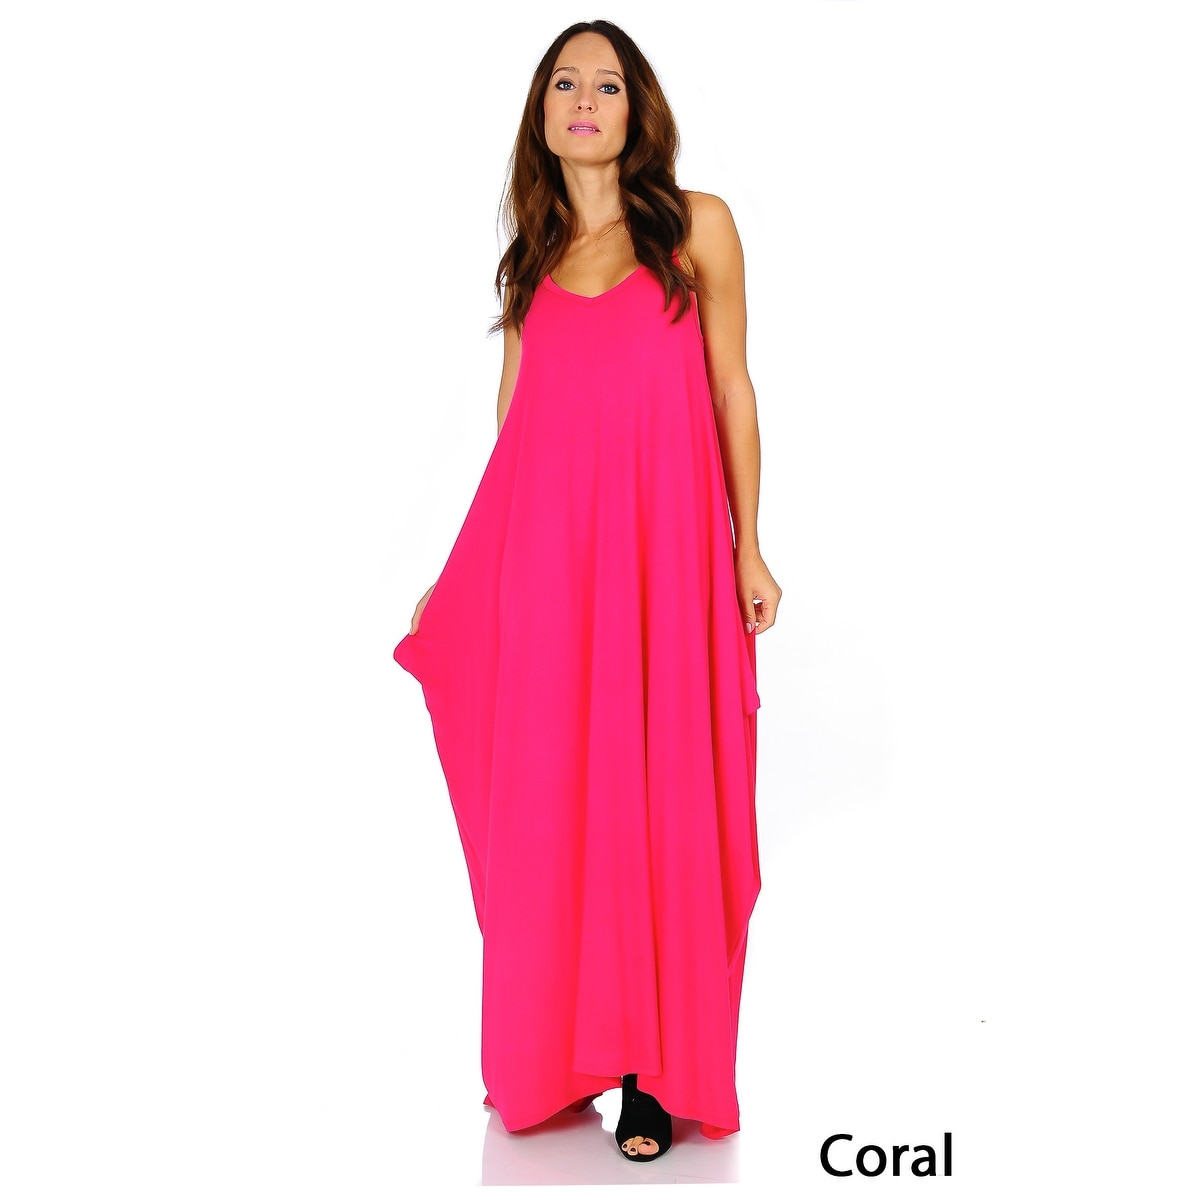 Simply Ravishing Women's Maxi Boho Harem Spaghetti Strap Dress (Size: Small - 3X) - Thumbnail 4